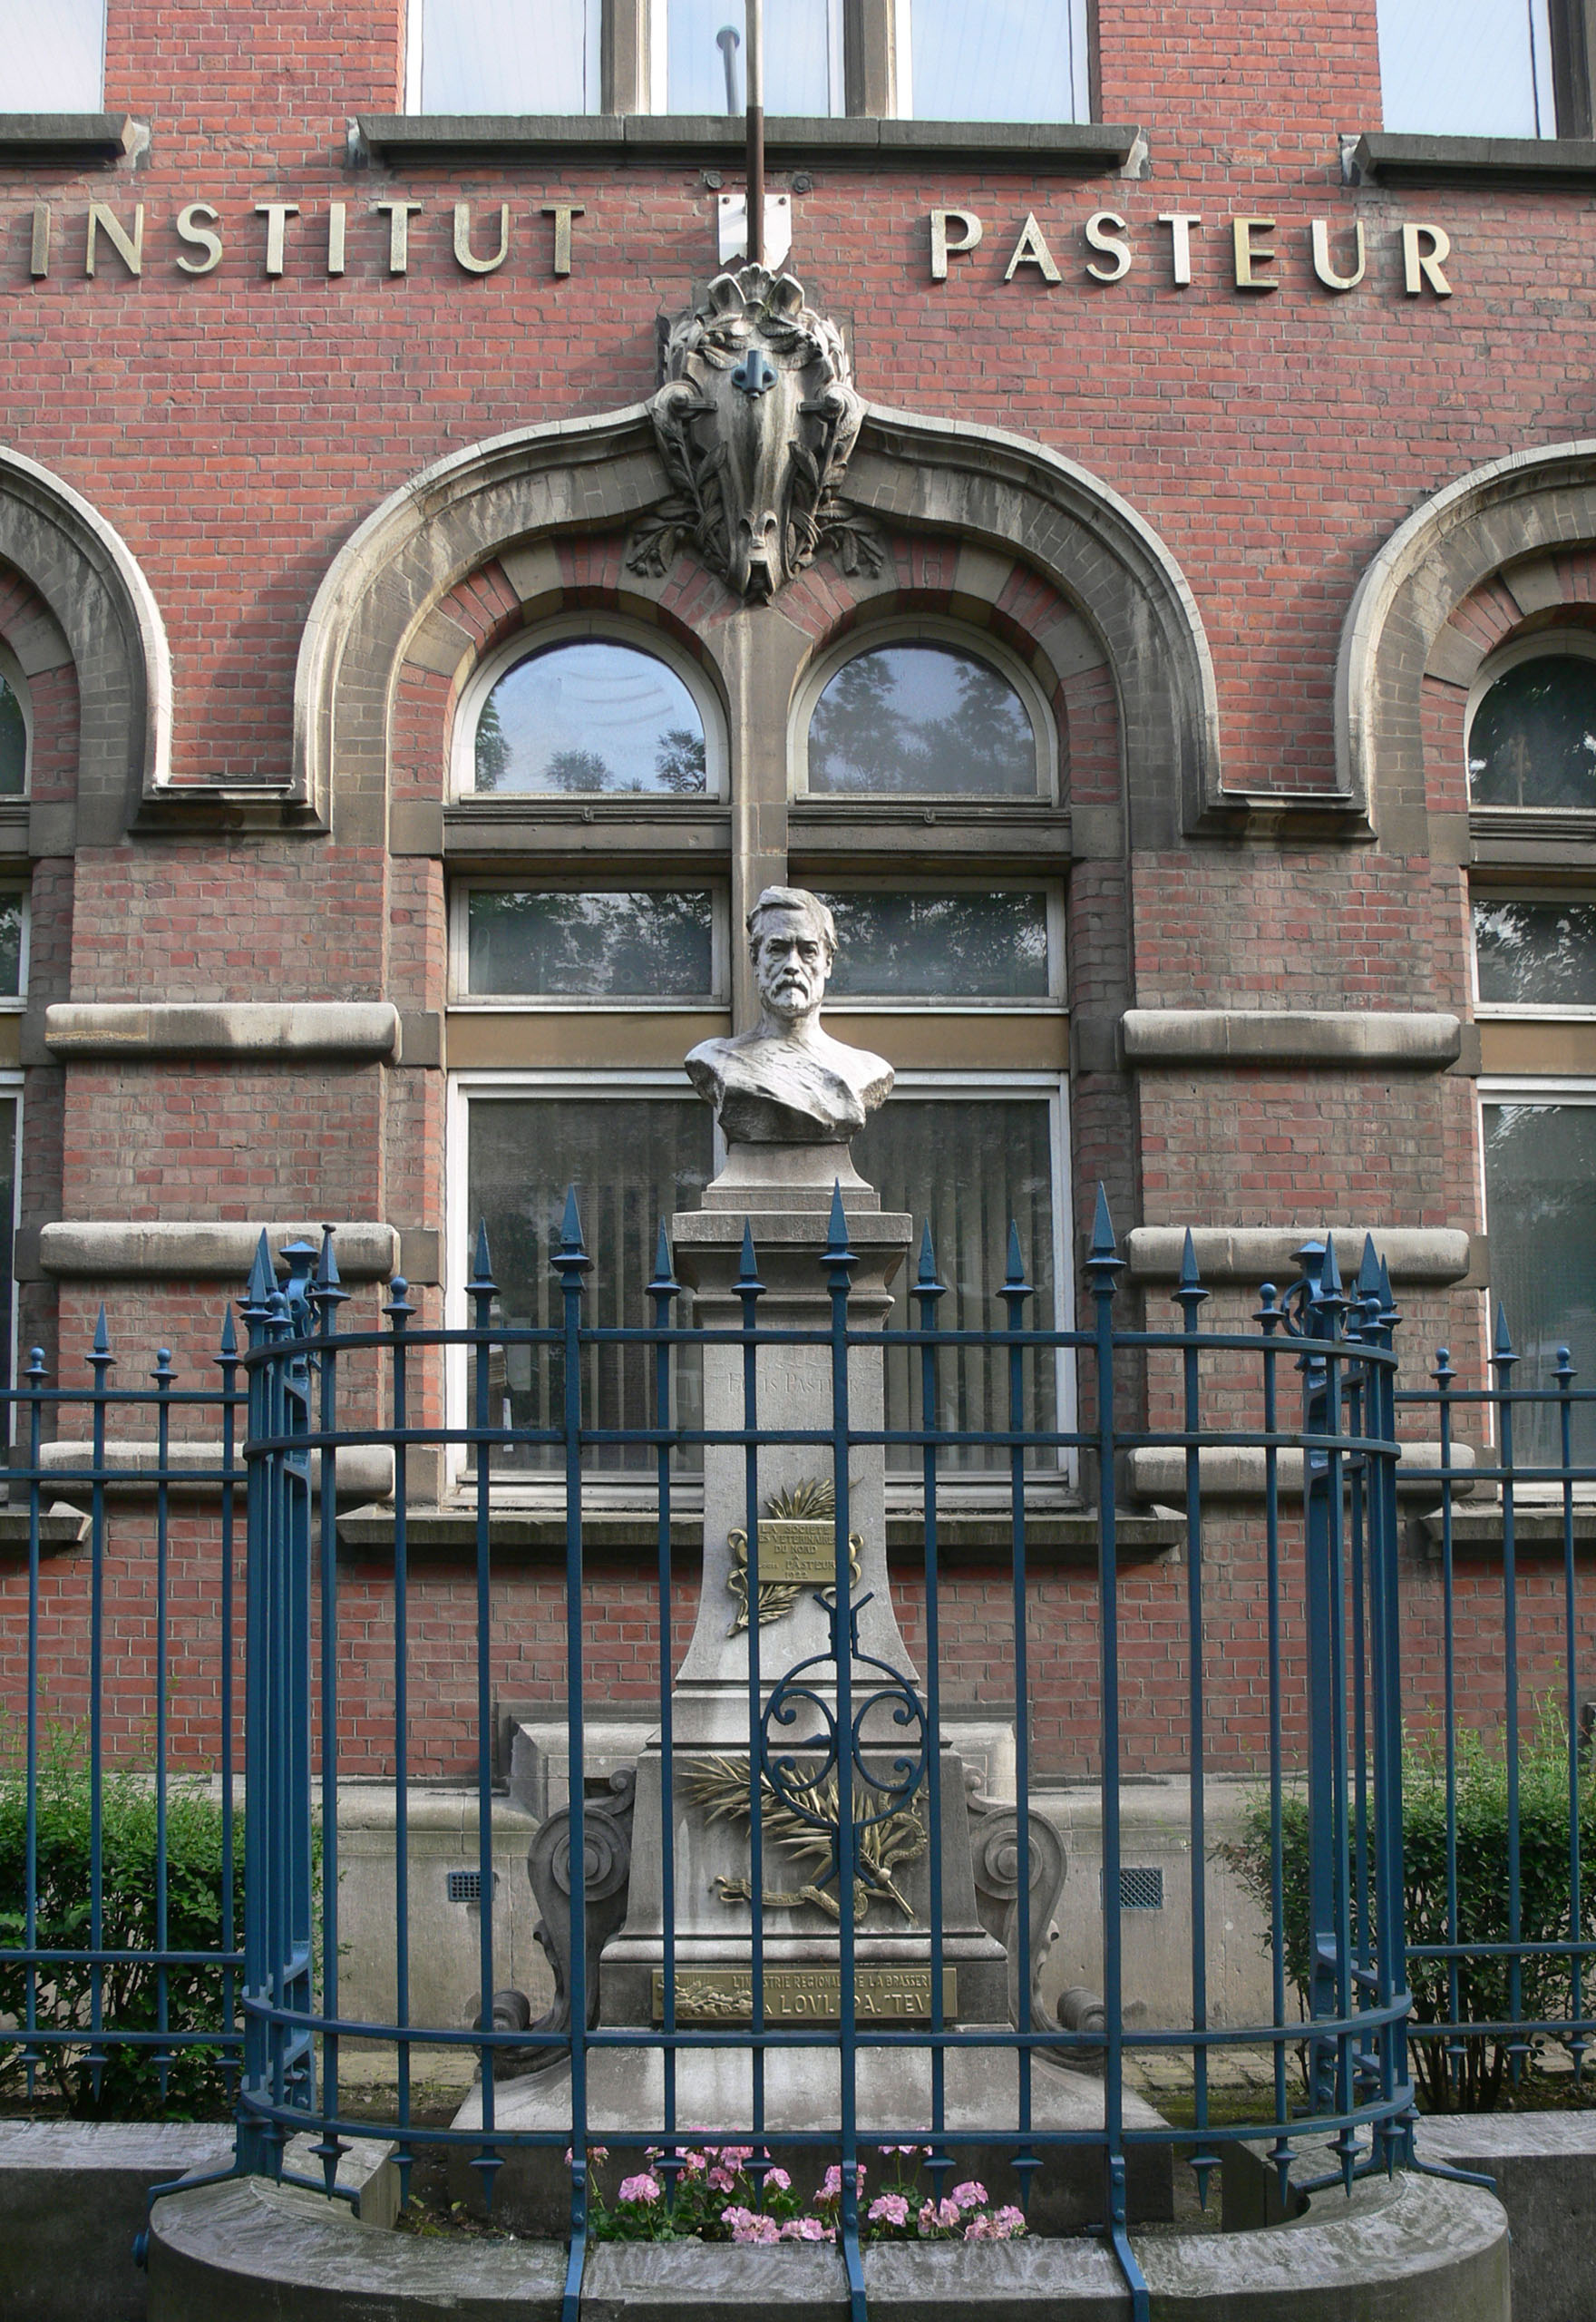 http://upload.wikimedia.org/wikipedia/commons/0/09/LouisPasteurMonumentLille.jpg